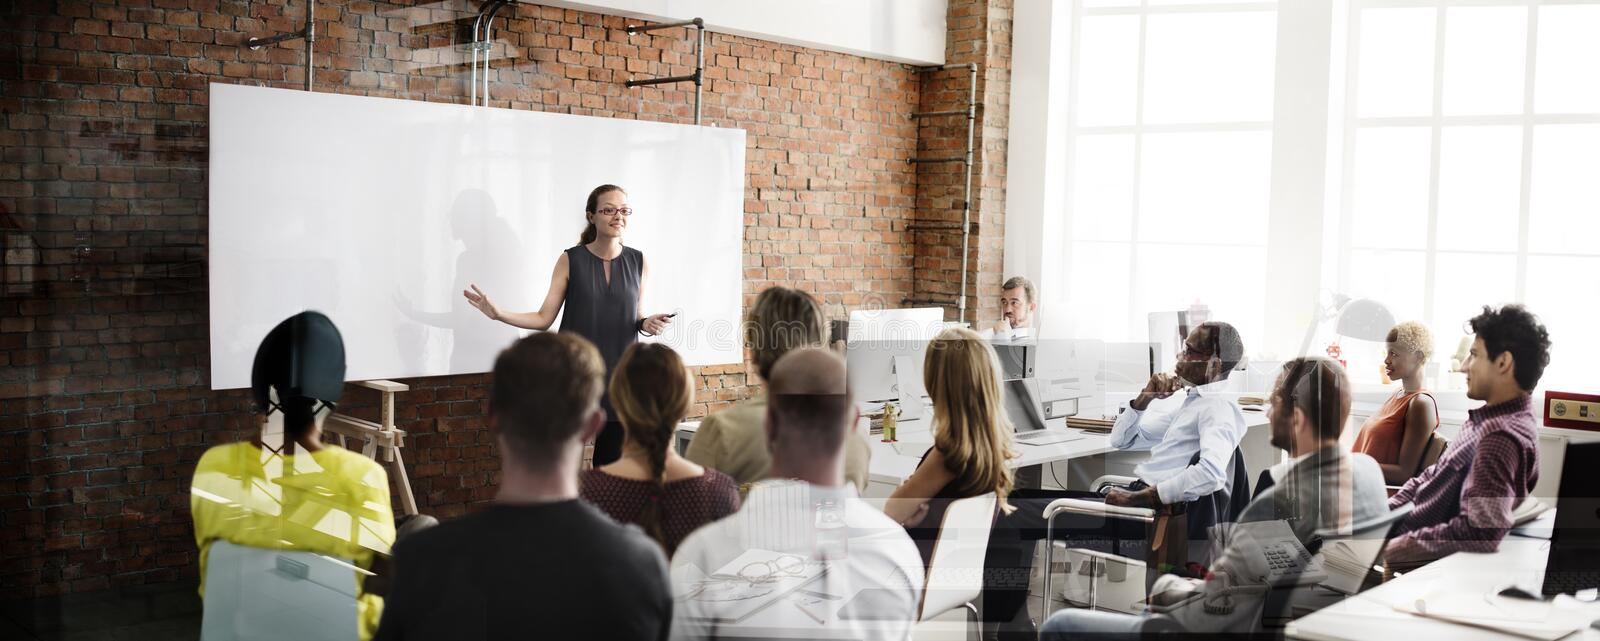 Training Business Strategy Seminar Meeting Concept stock image